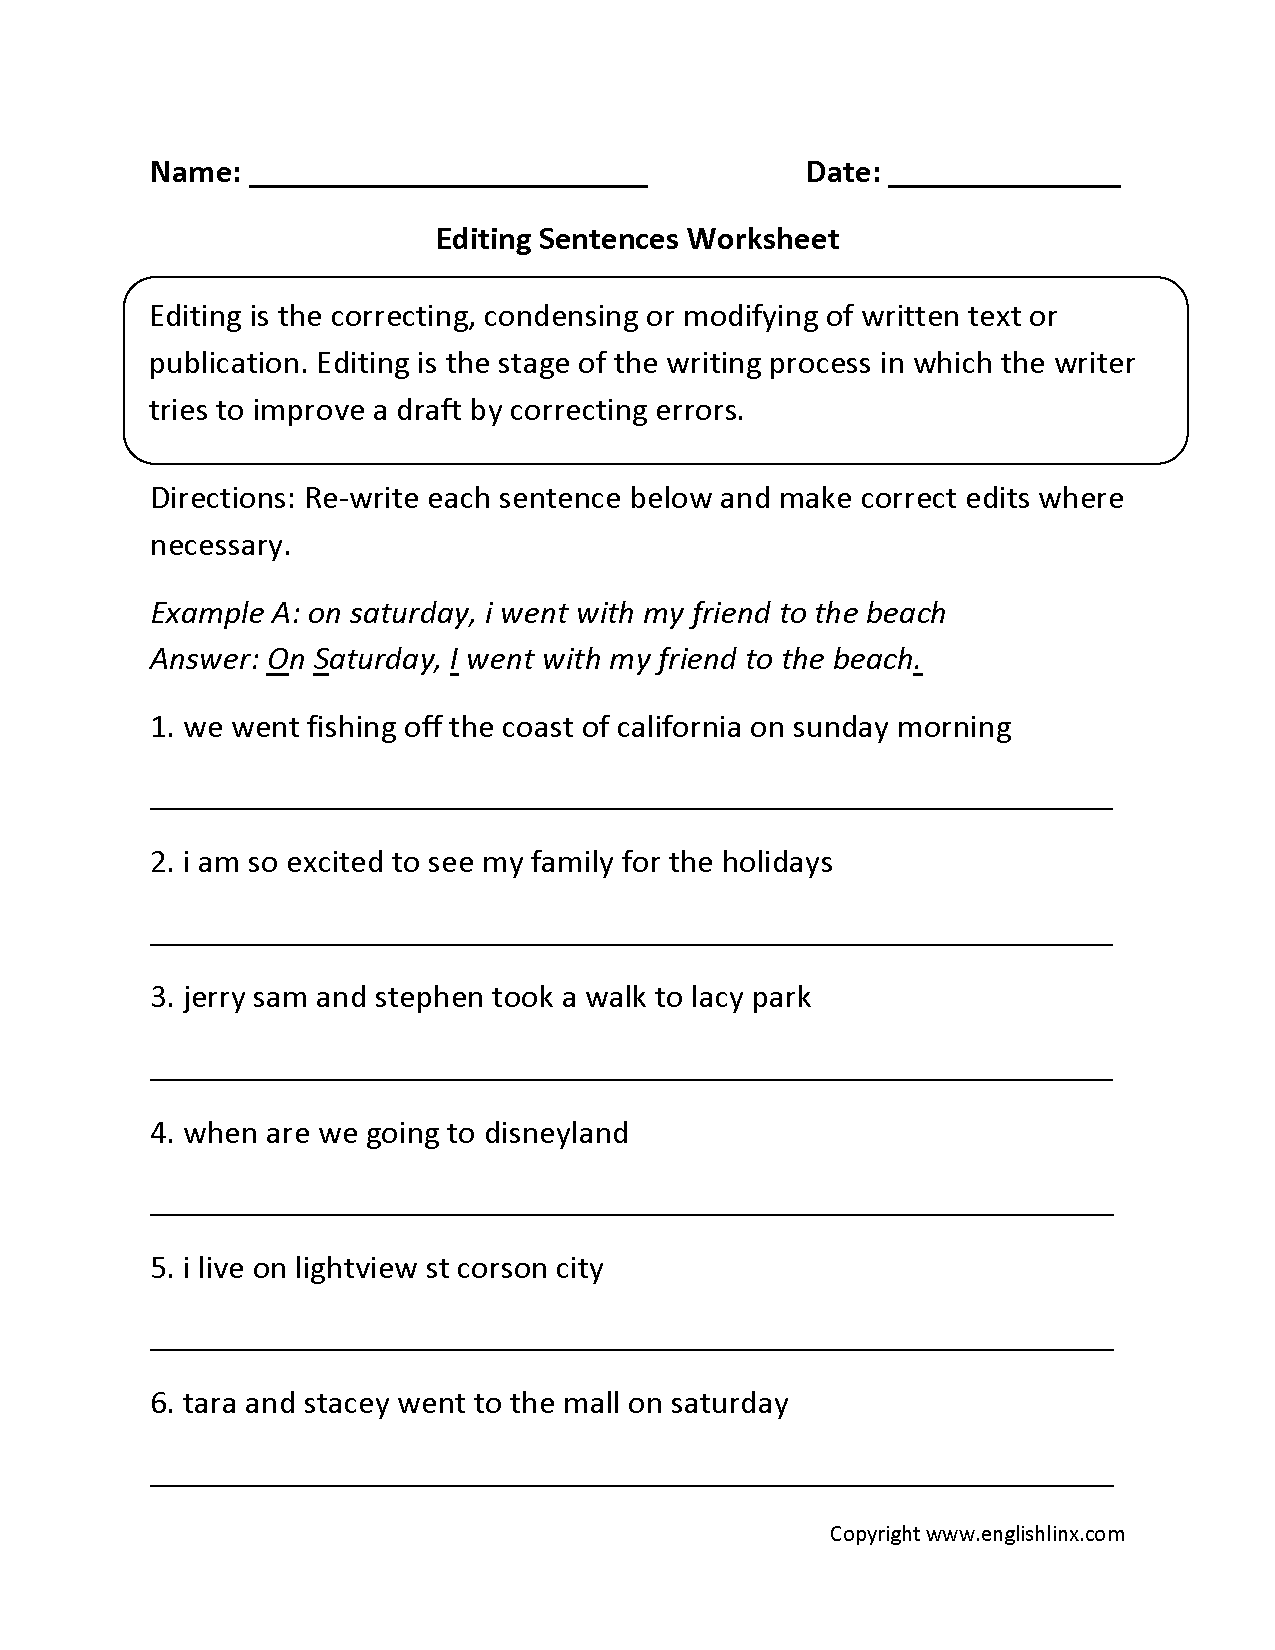 Worksheets 7th Grade Spelling Worksheets writing worksheets editing worksheets